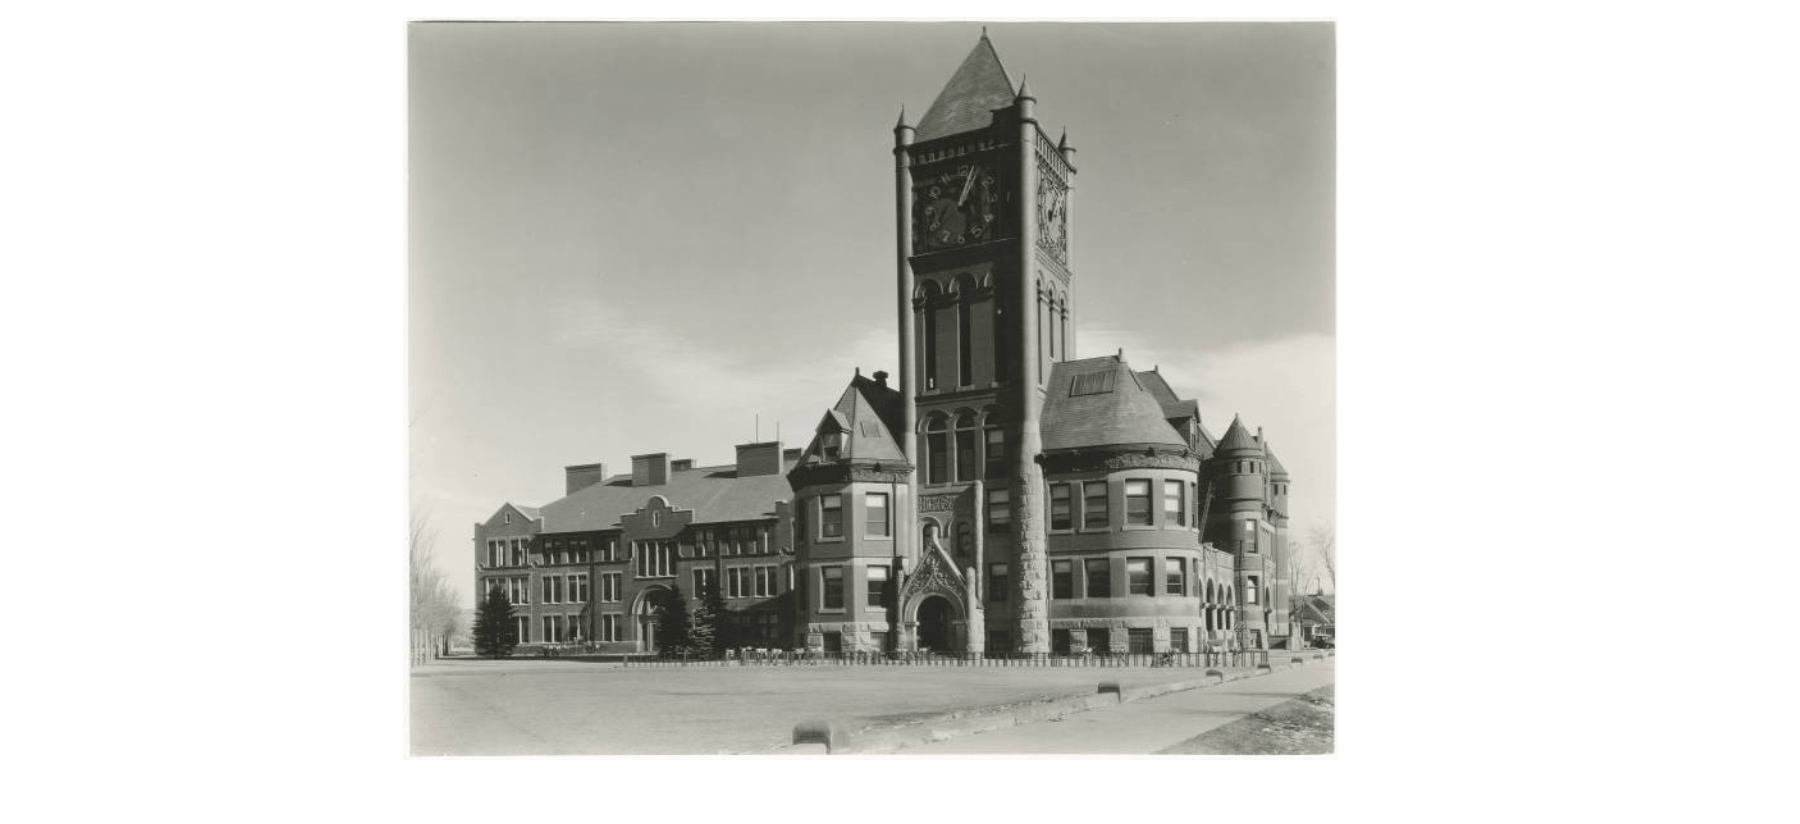 Colorado Springs High School was built in 1892. It was later razed to make way for what is now Palmer High School.